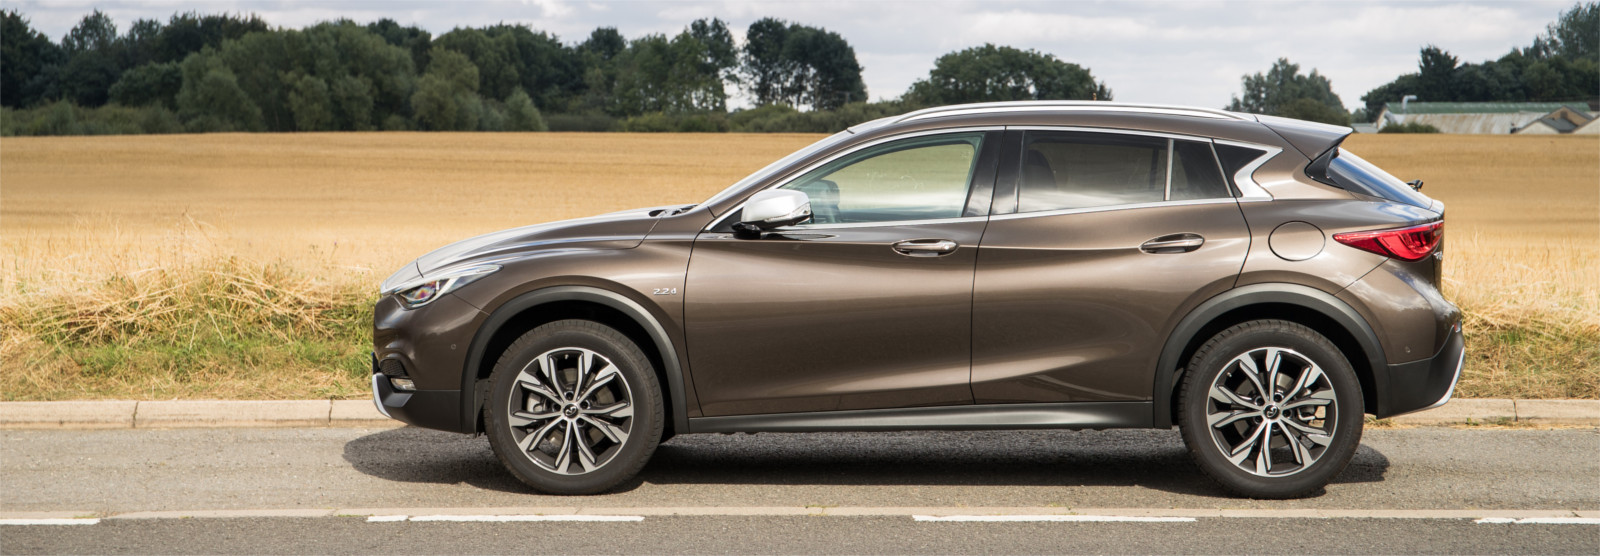 Lateral qx30